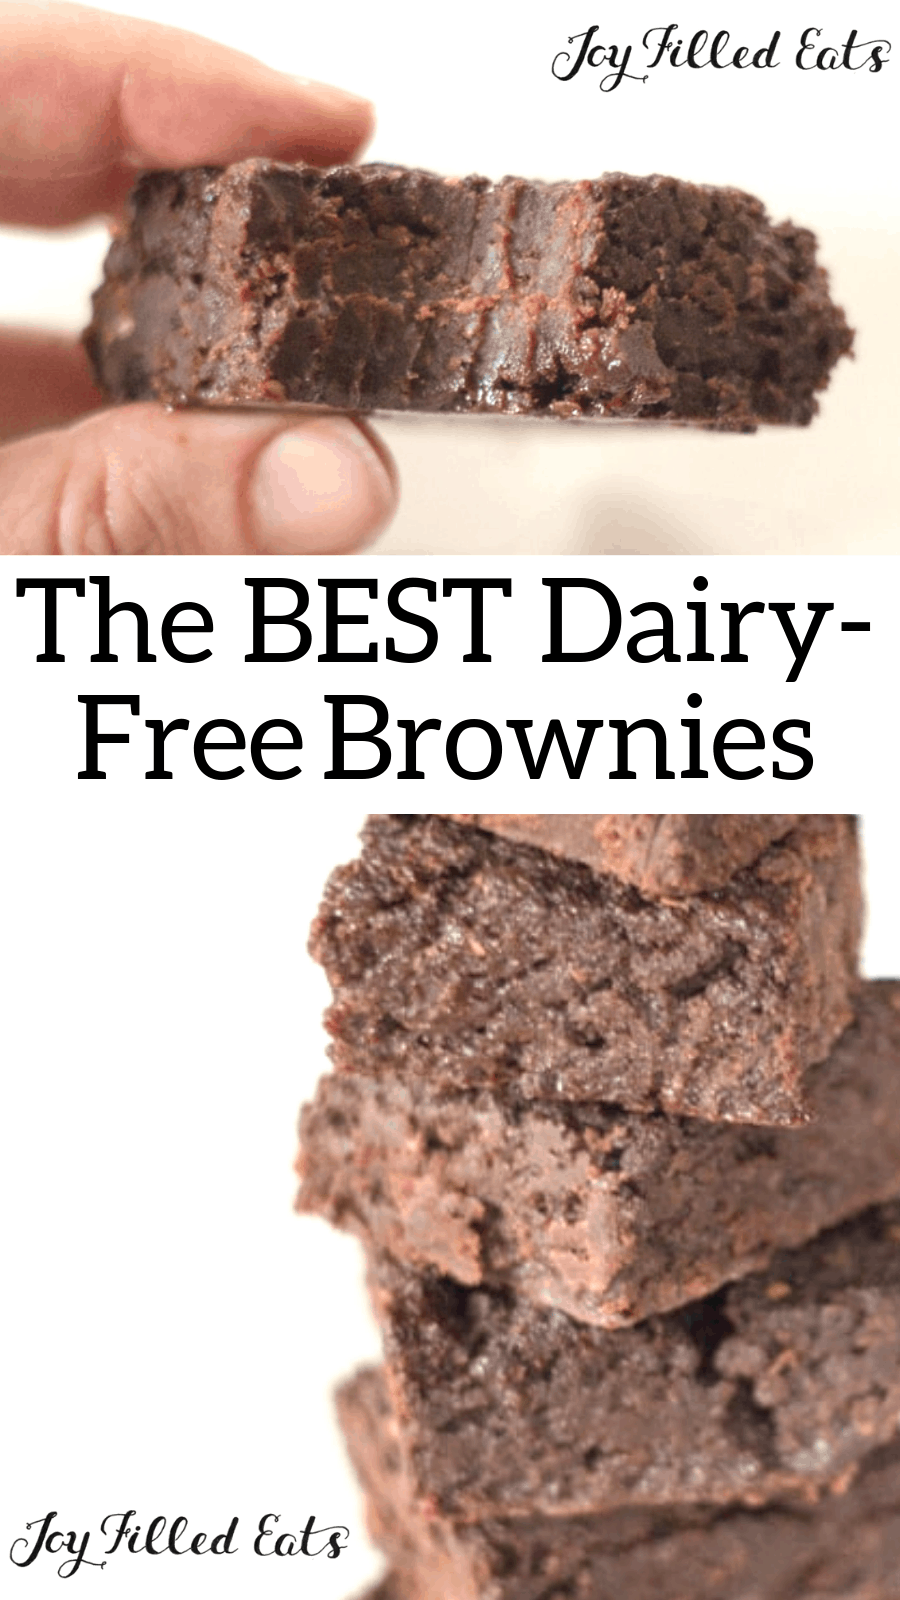 Fudgy Brownies with Coconut Oil - KETO, LOW CARB, GLUTEN-FREE, GRAIN-FREE, SUGAR-FREE, DAIRY-FREE,